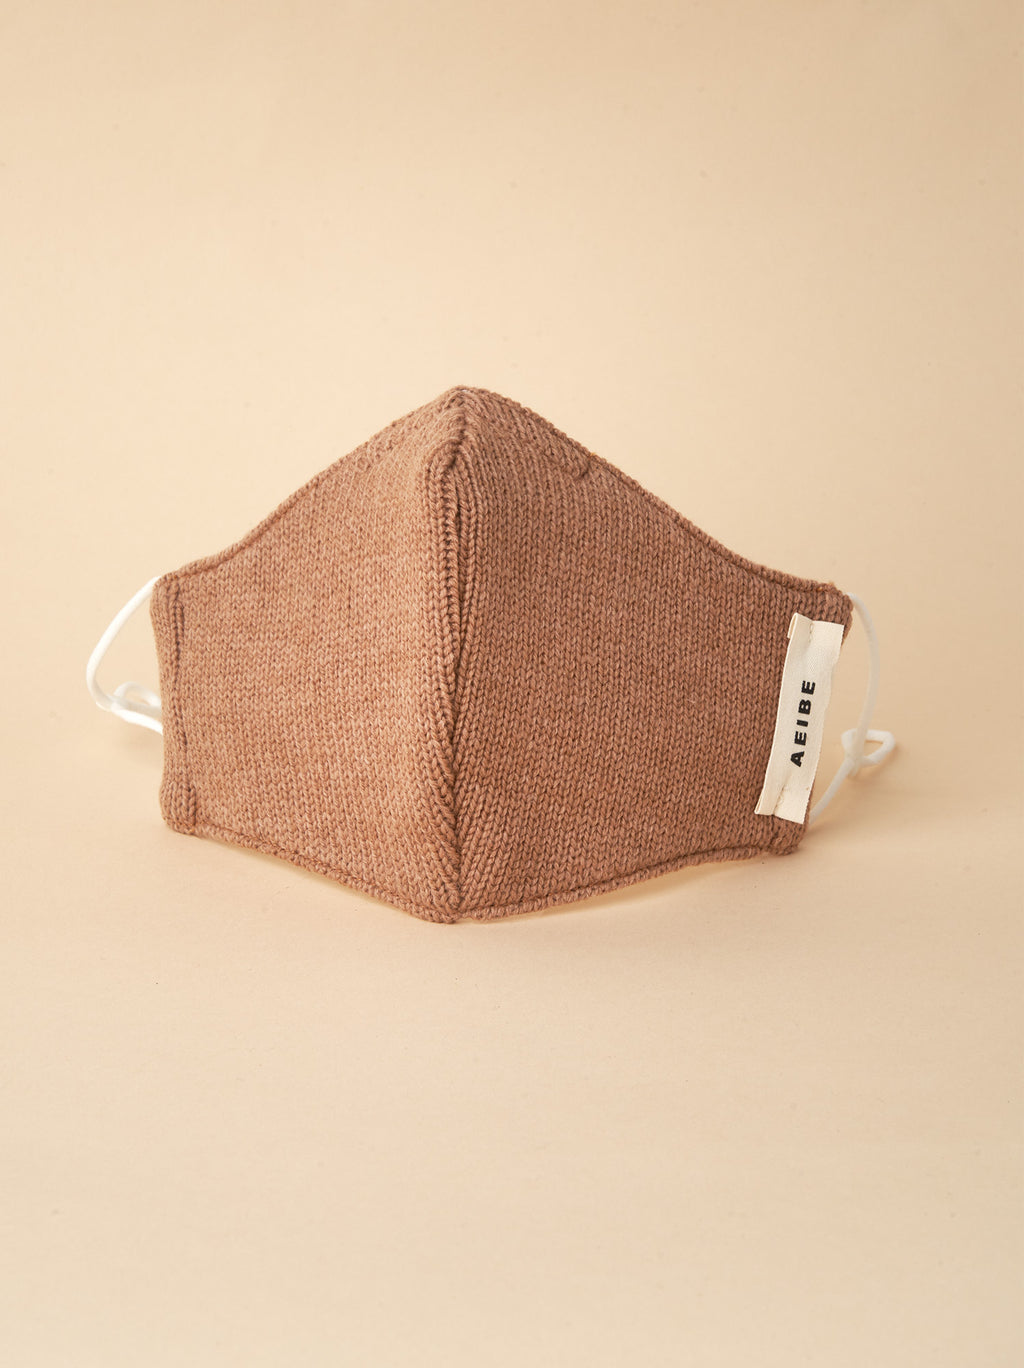 3Ply Filtered face mask, Lambswool Knit Camel - AEIBE